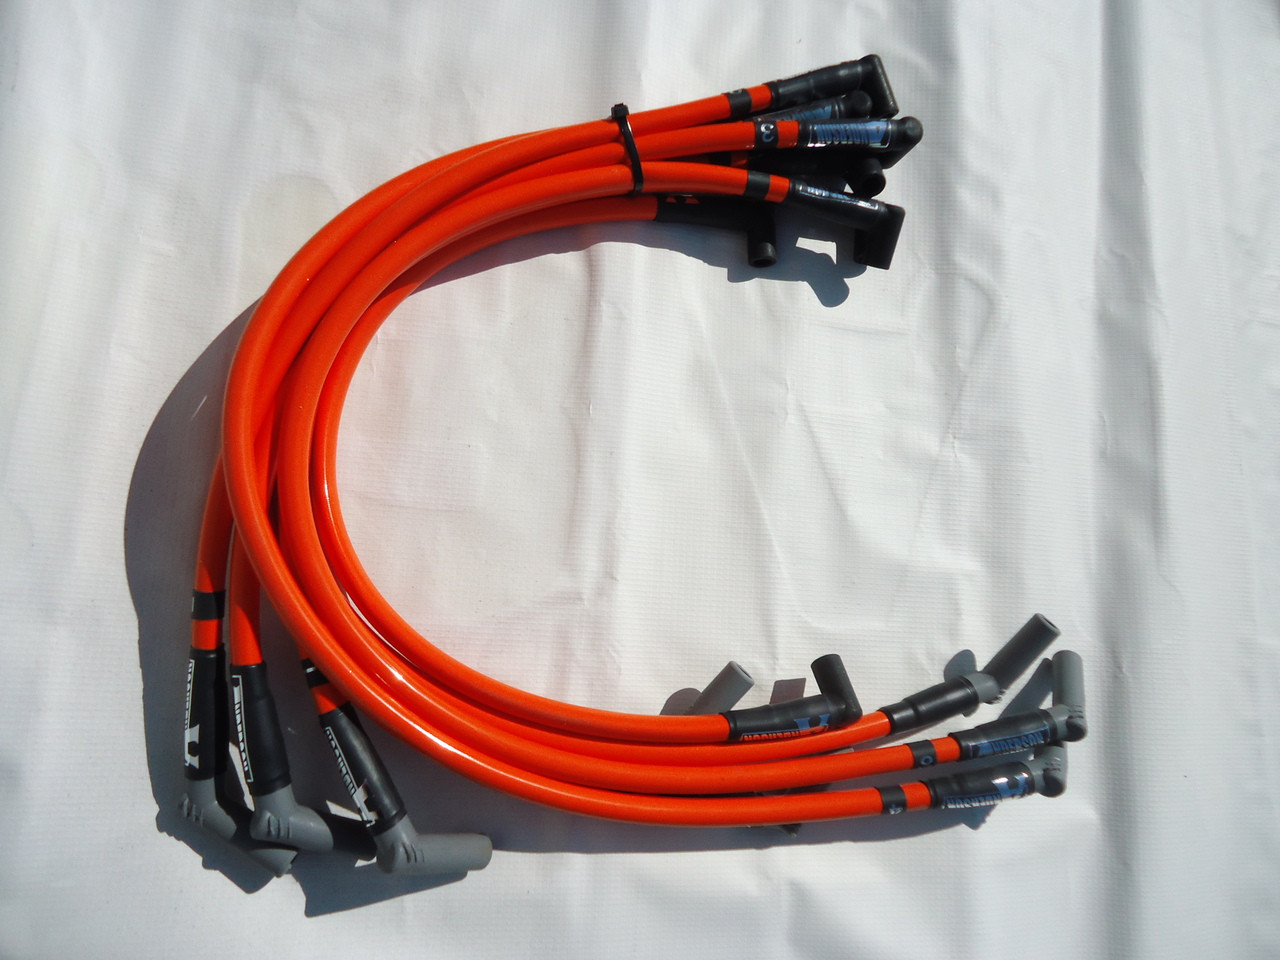 anderson super 40 spark plug wires competition orange fits 86 93 5 0l mustang anderson ford motorsport [ 1280 x 960 Pixel ]